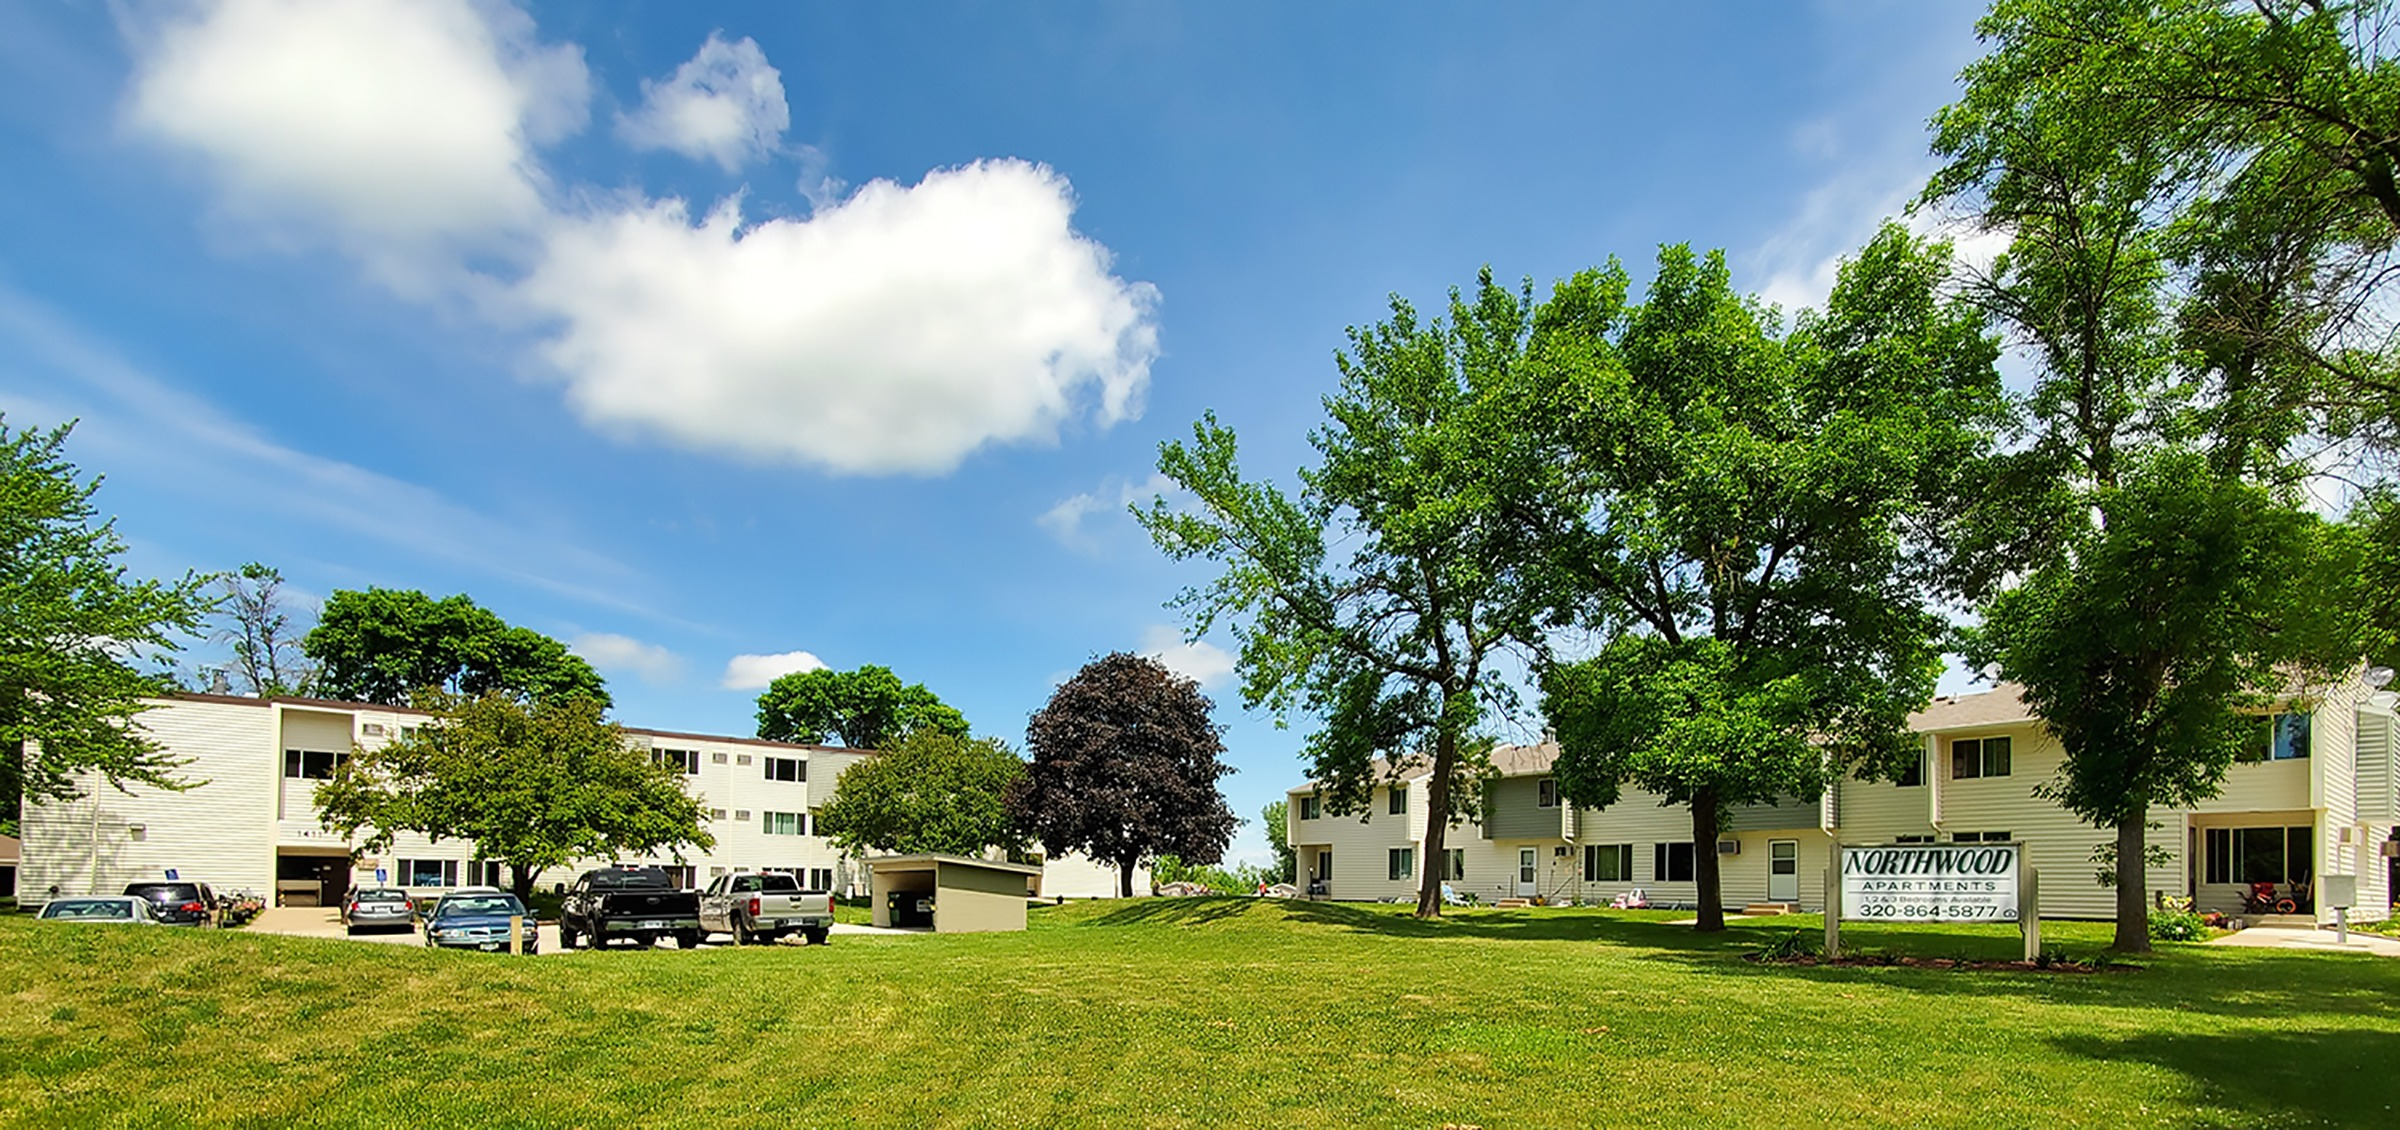 Northwood, MN Apartments | Income Based Rent | Oliver ...